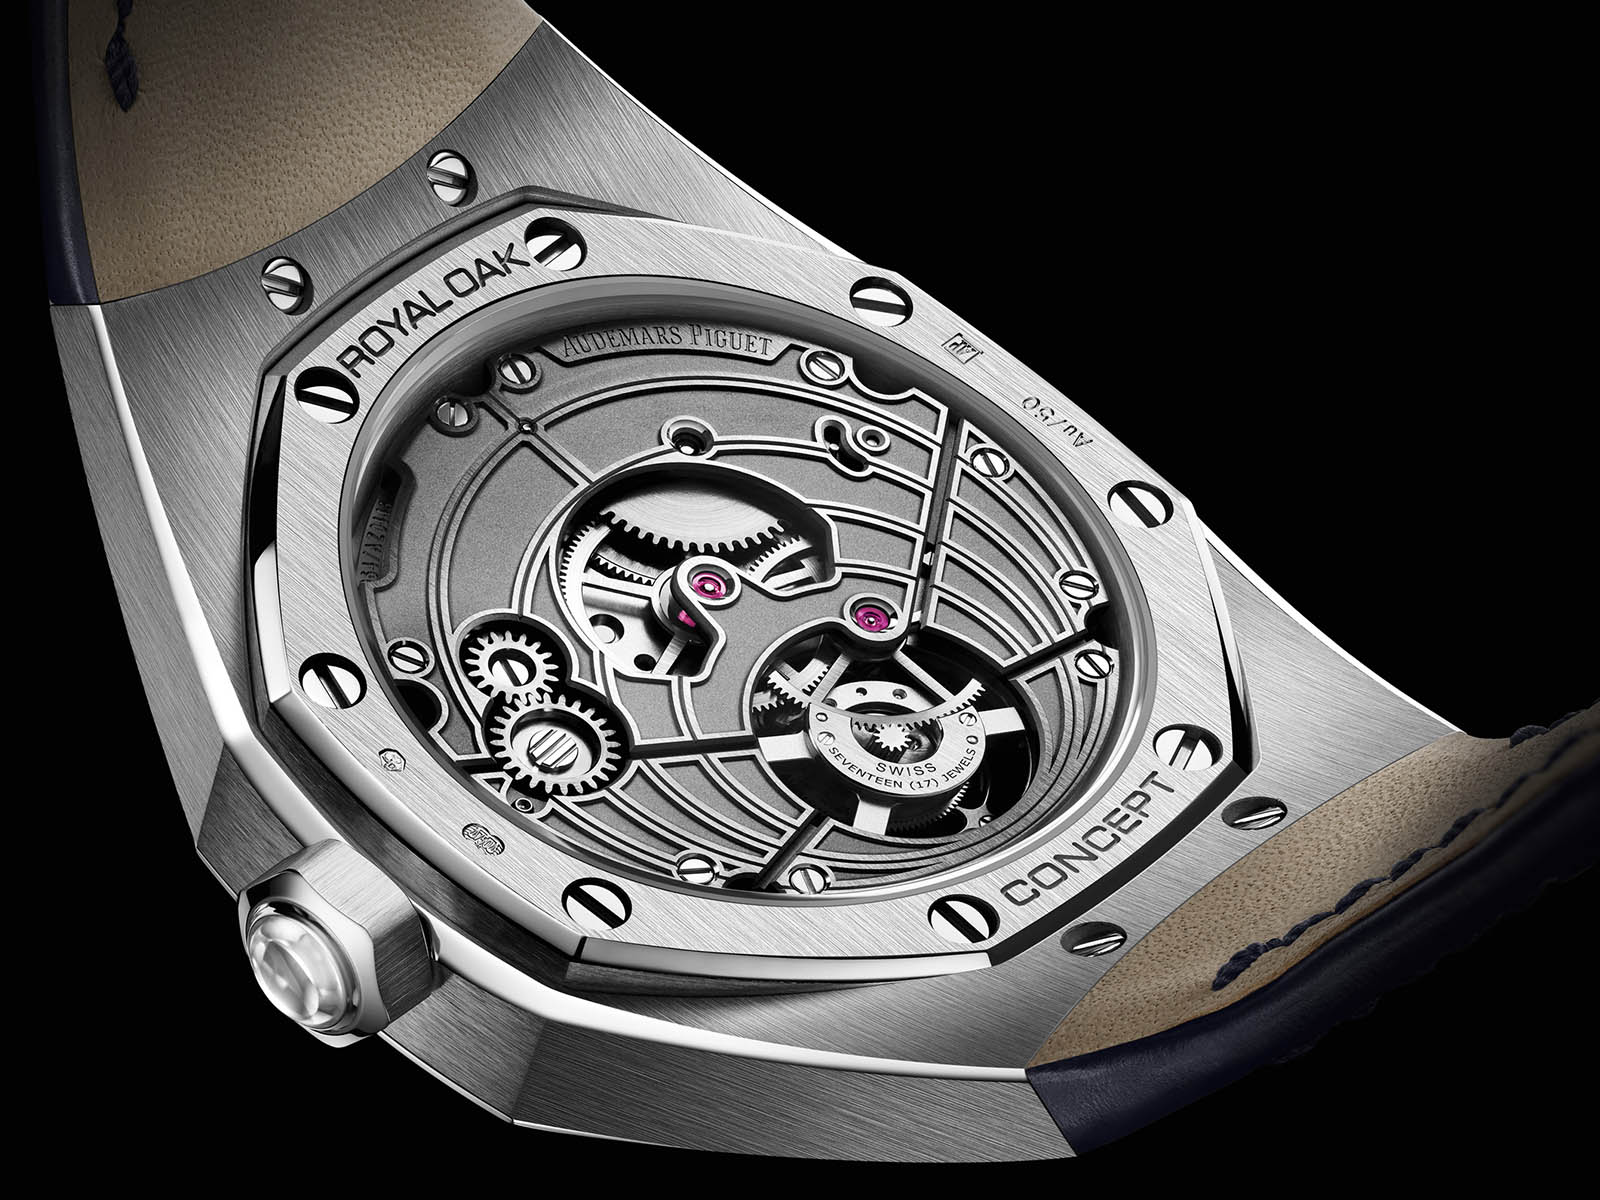 26630bc-gg-d326cr-01-audemars-piguet-royal-oak-concept-frosted-gold-tourbillon-3.jpg